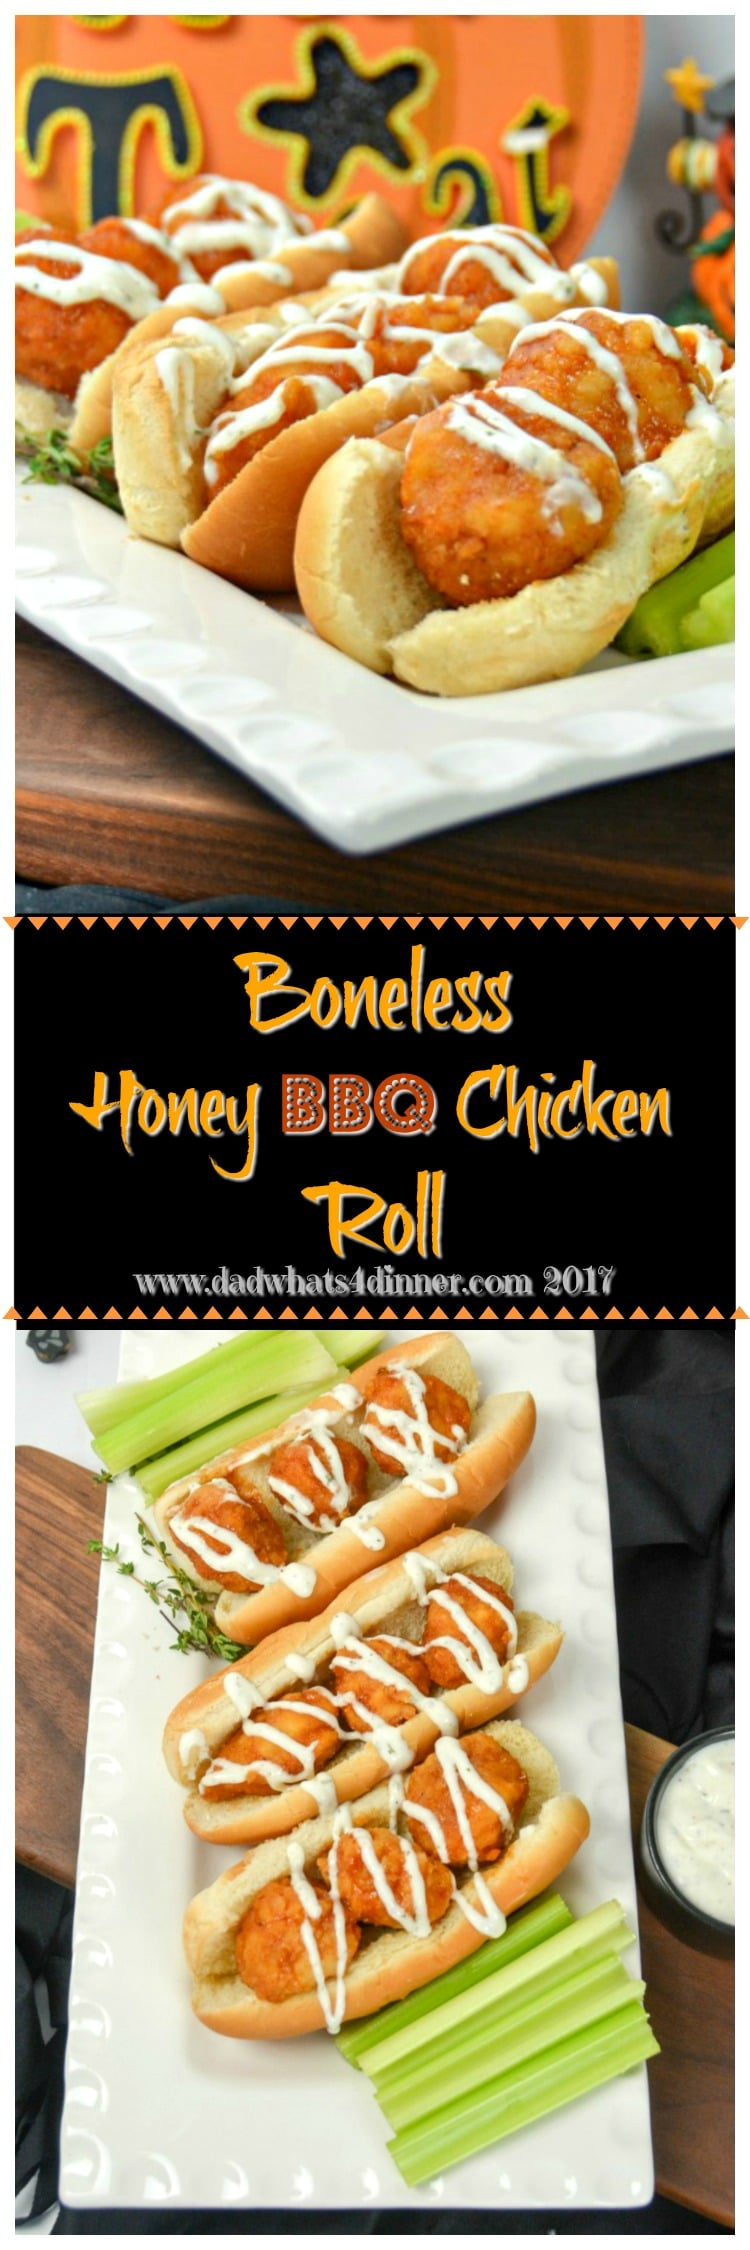 Try these Boneless Honey BBQ Chicken Roll with Creamy Ranch Sauce for a quick and simple trick or treat night snack you can make with your kids. #boneless #chicken #wings #kid-friendly #buffalo #sliders www.dadwhats4dinner.com